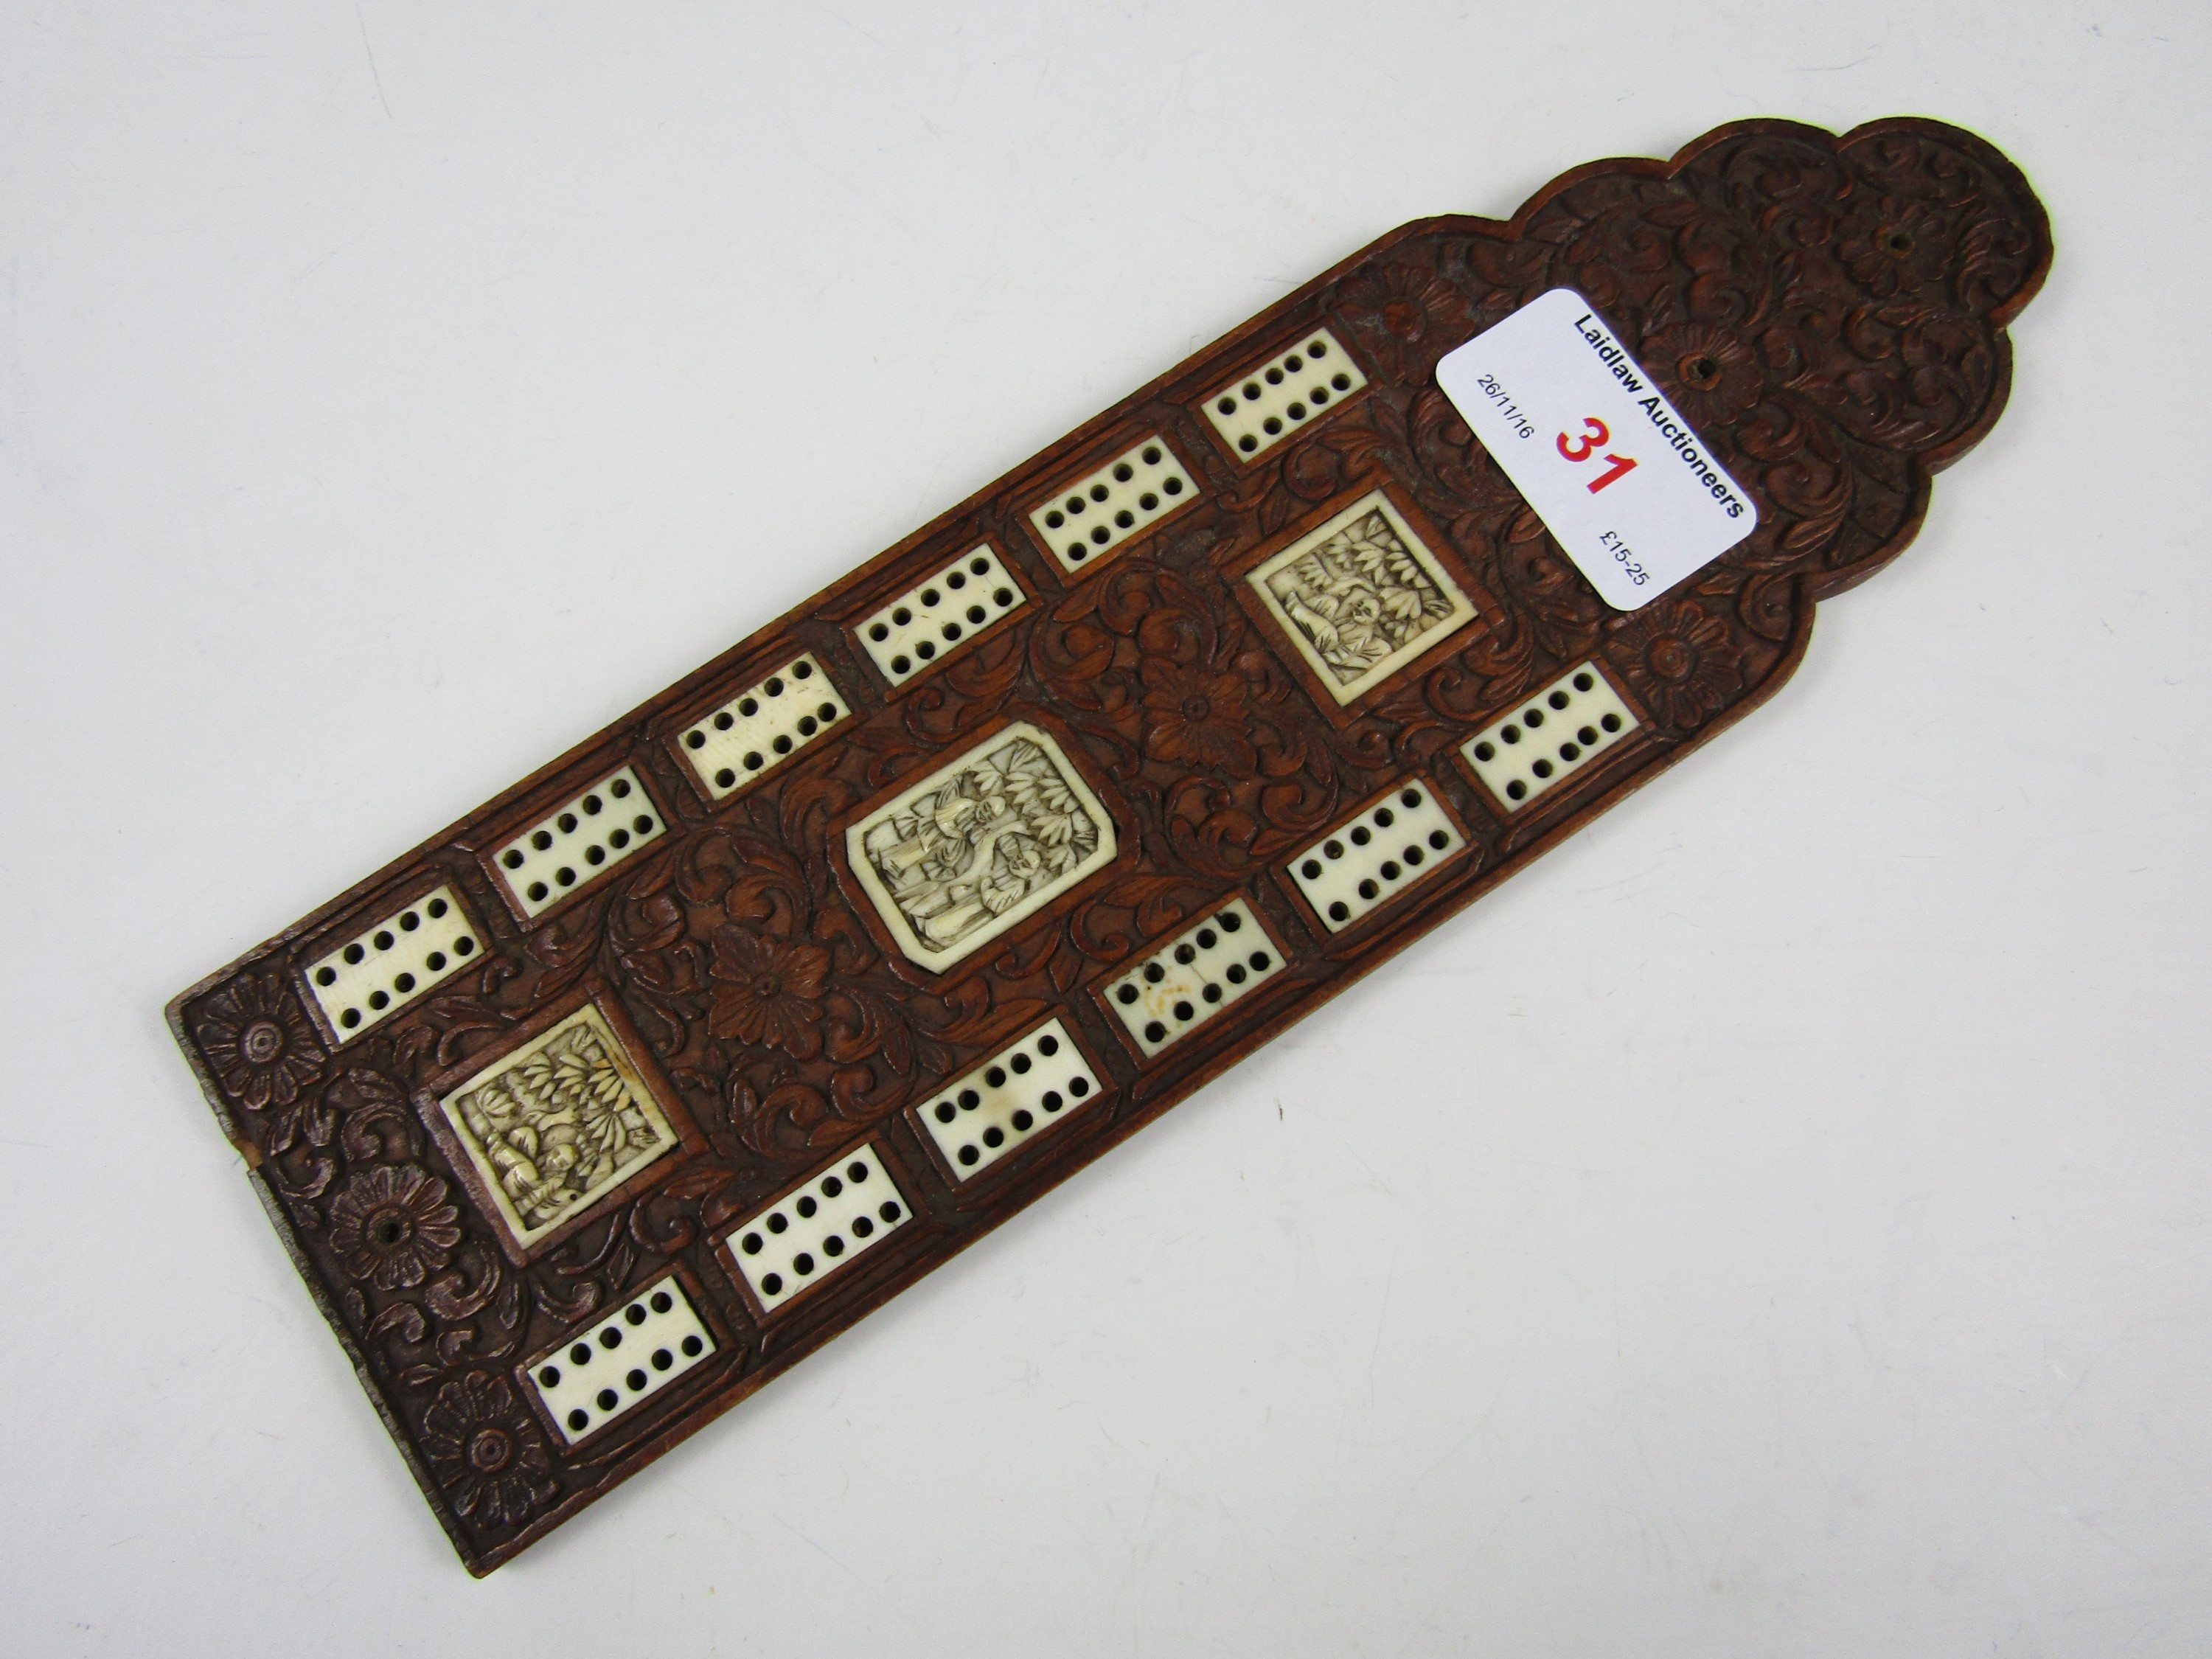 Lot 31 - A late 19th / early 20th Century Chinese ivory and hardwood cribbage board